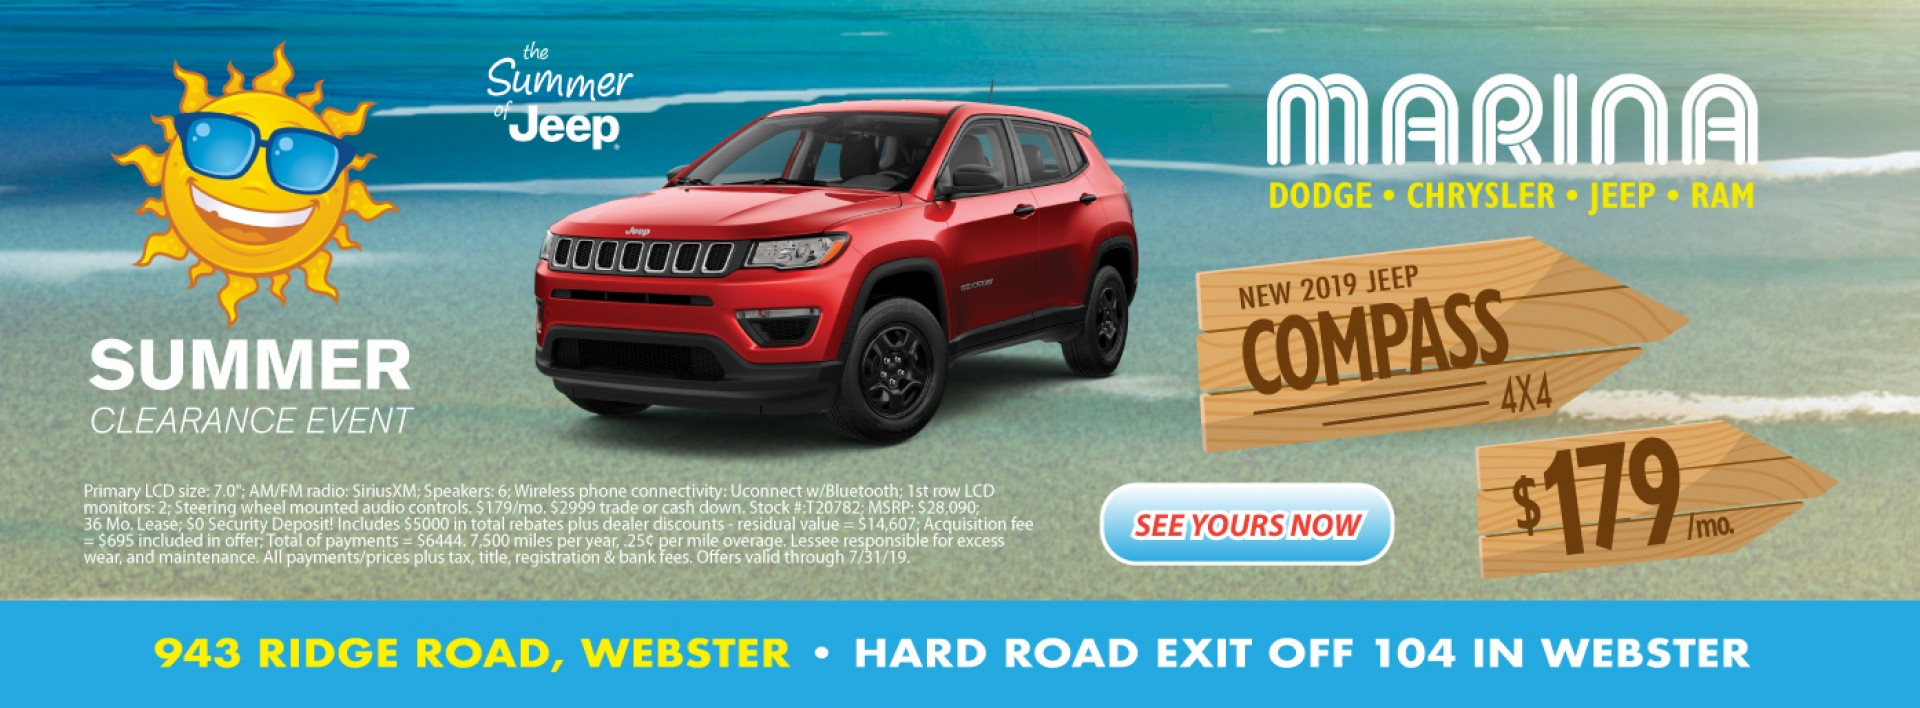 Dodge Dealers Rochester Ny >> New Chrysler Dodge Jeep Ram Used Car Dealer Near Rochester Ny